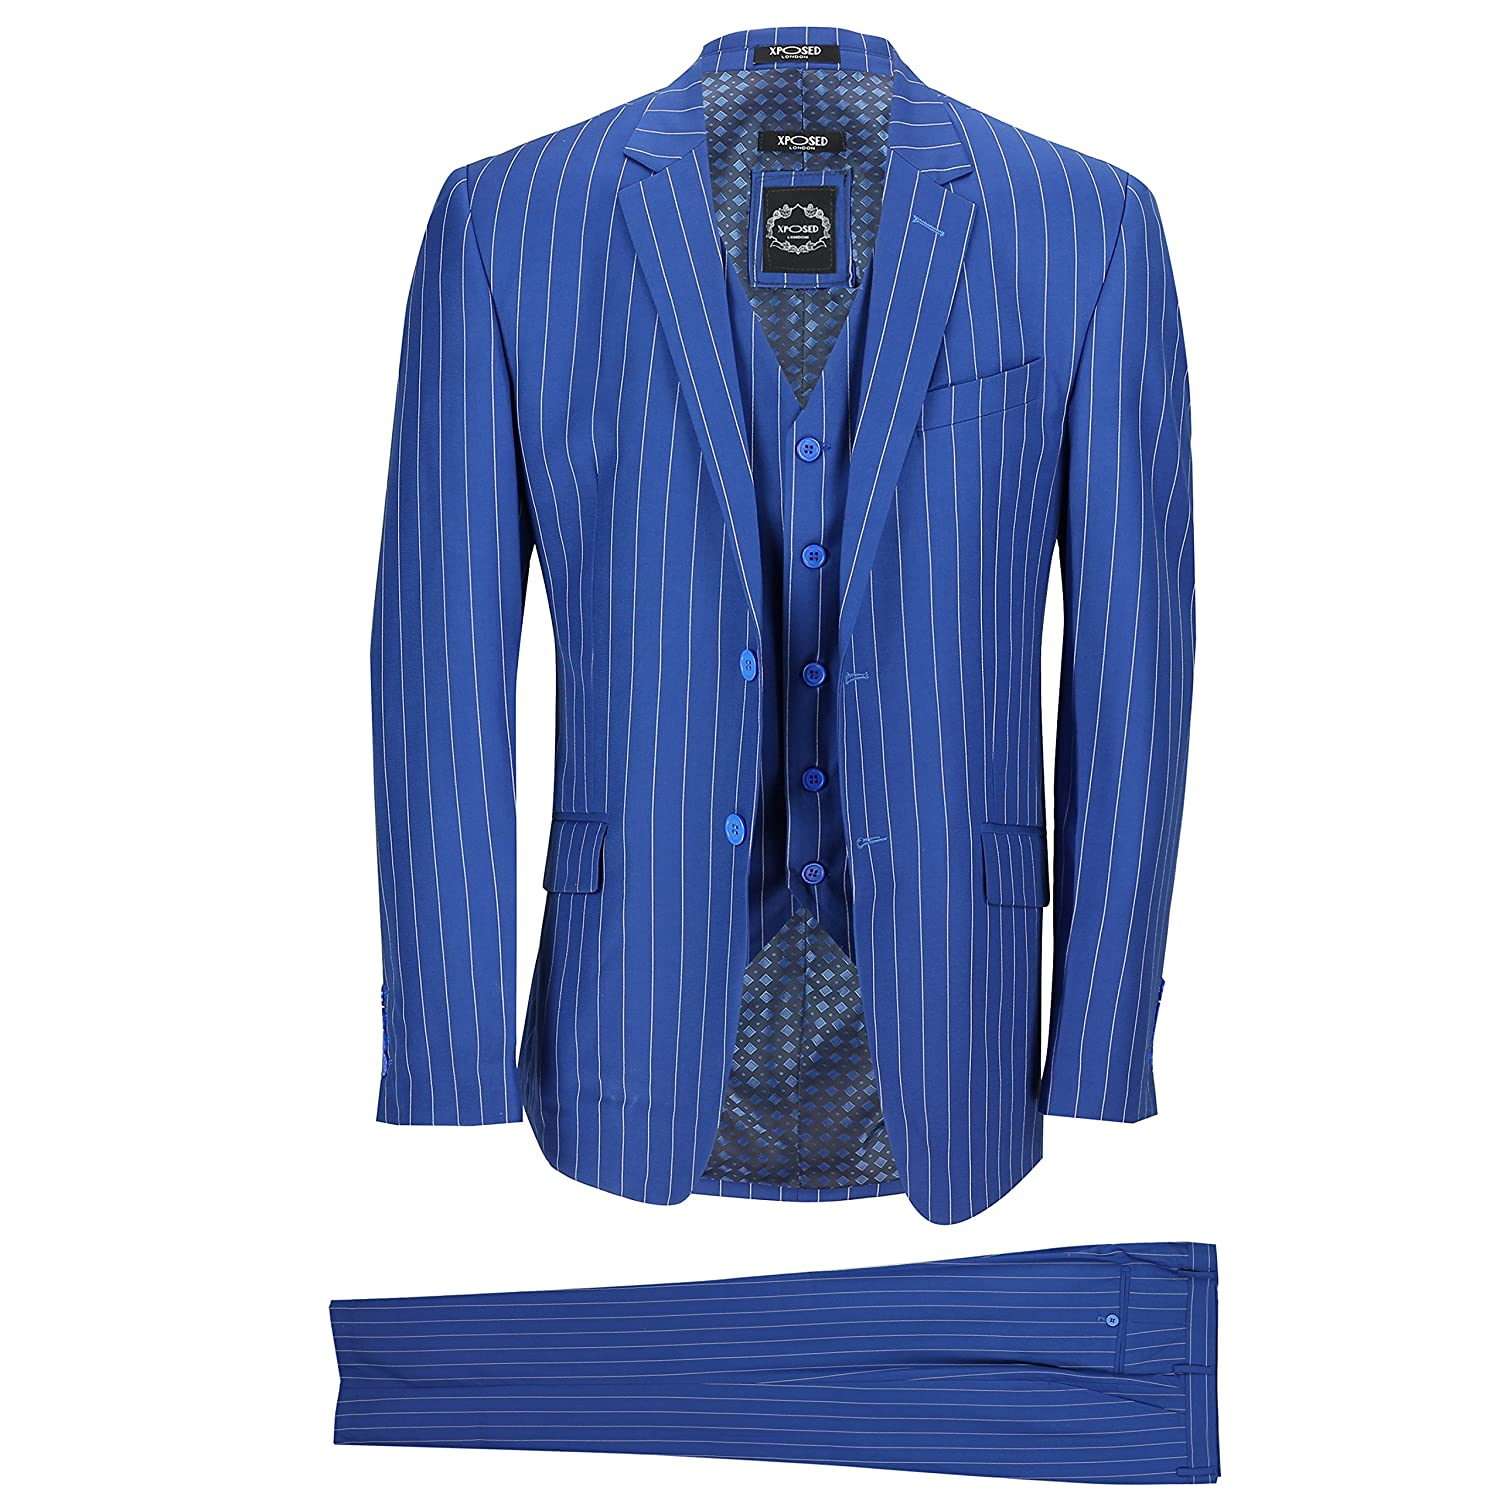 Xposed Mens 3 Piece Suit White Pinstripe On Royal Blue Tailored Fit Jacket With Twin Buttons Smart Casual Vintage Chest Uk 50 Eu 60 Trouser 44 At Amazon